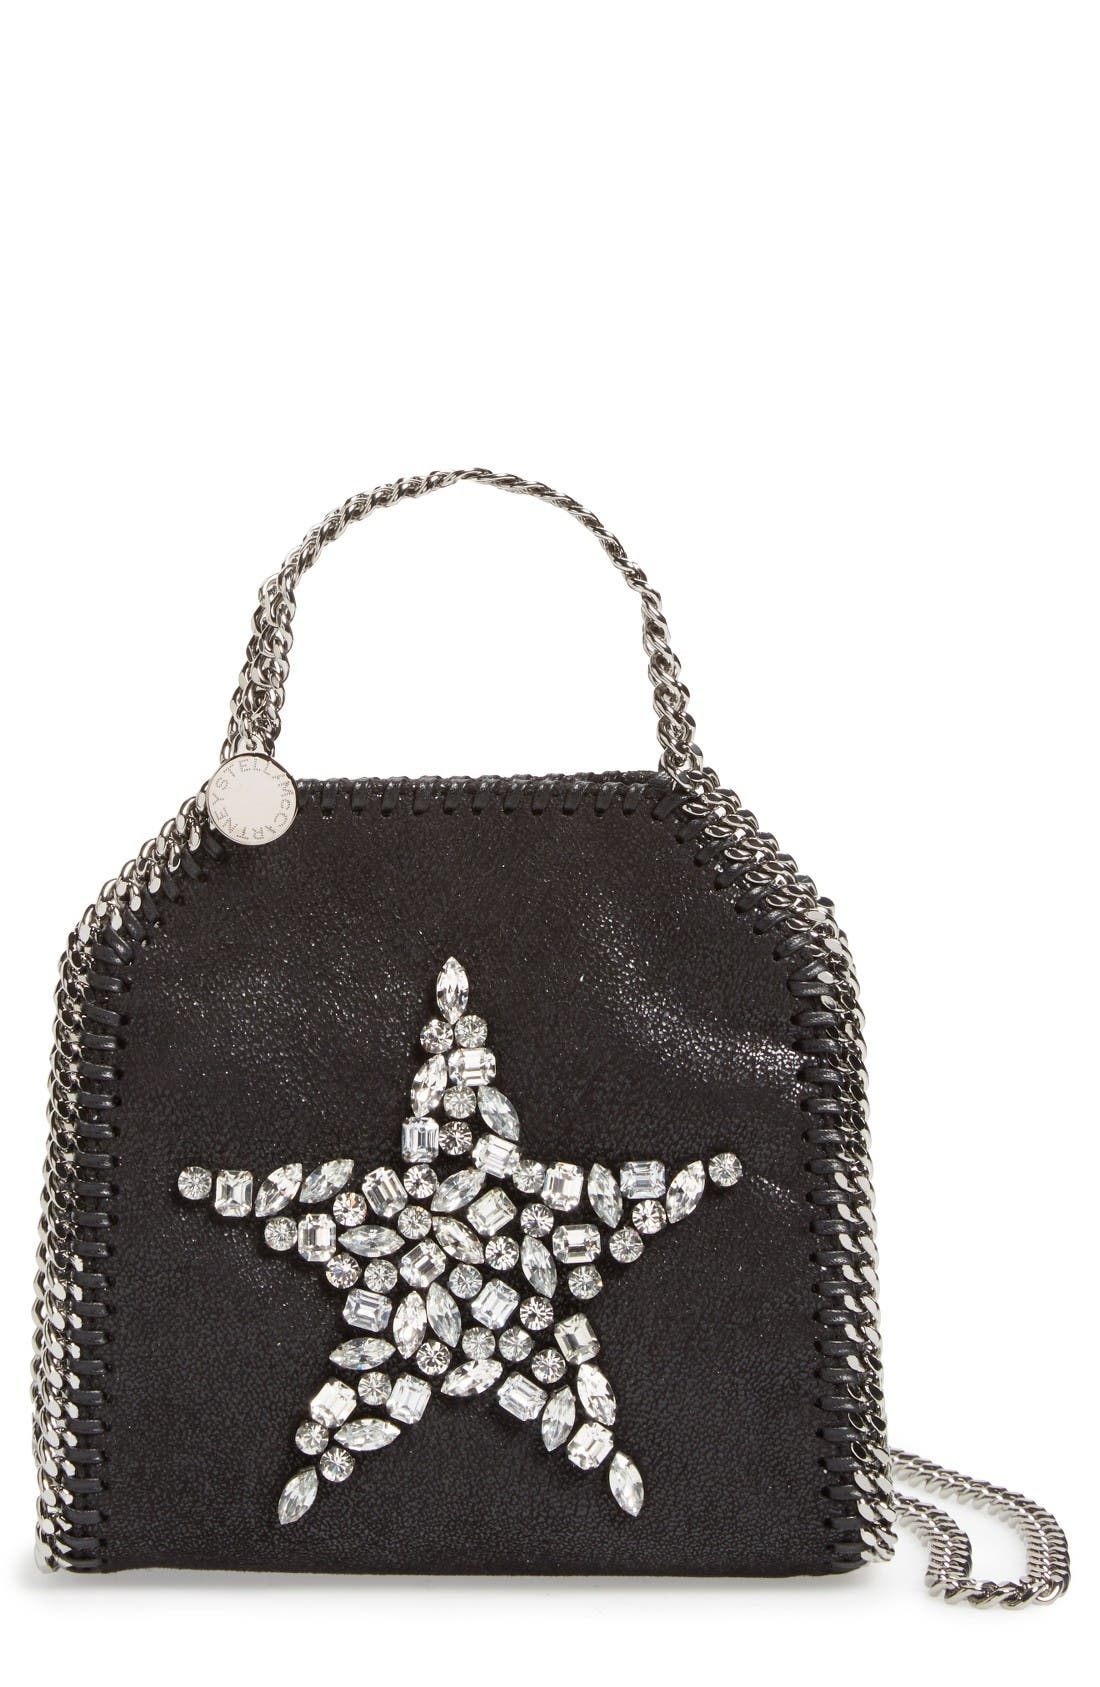 Alternate Image 1 Selected - Stella McCartney Tiny Falabella Faux Leather Crossbody Bag